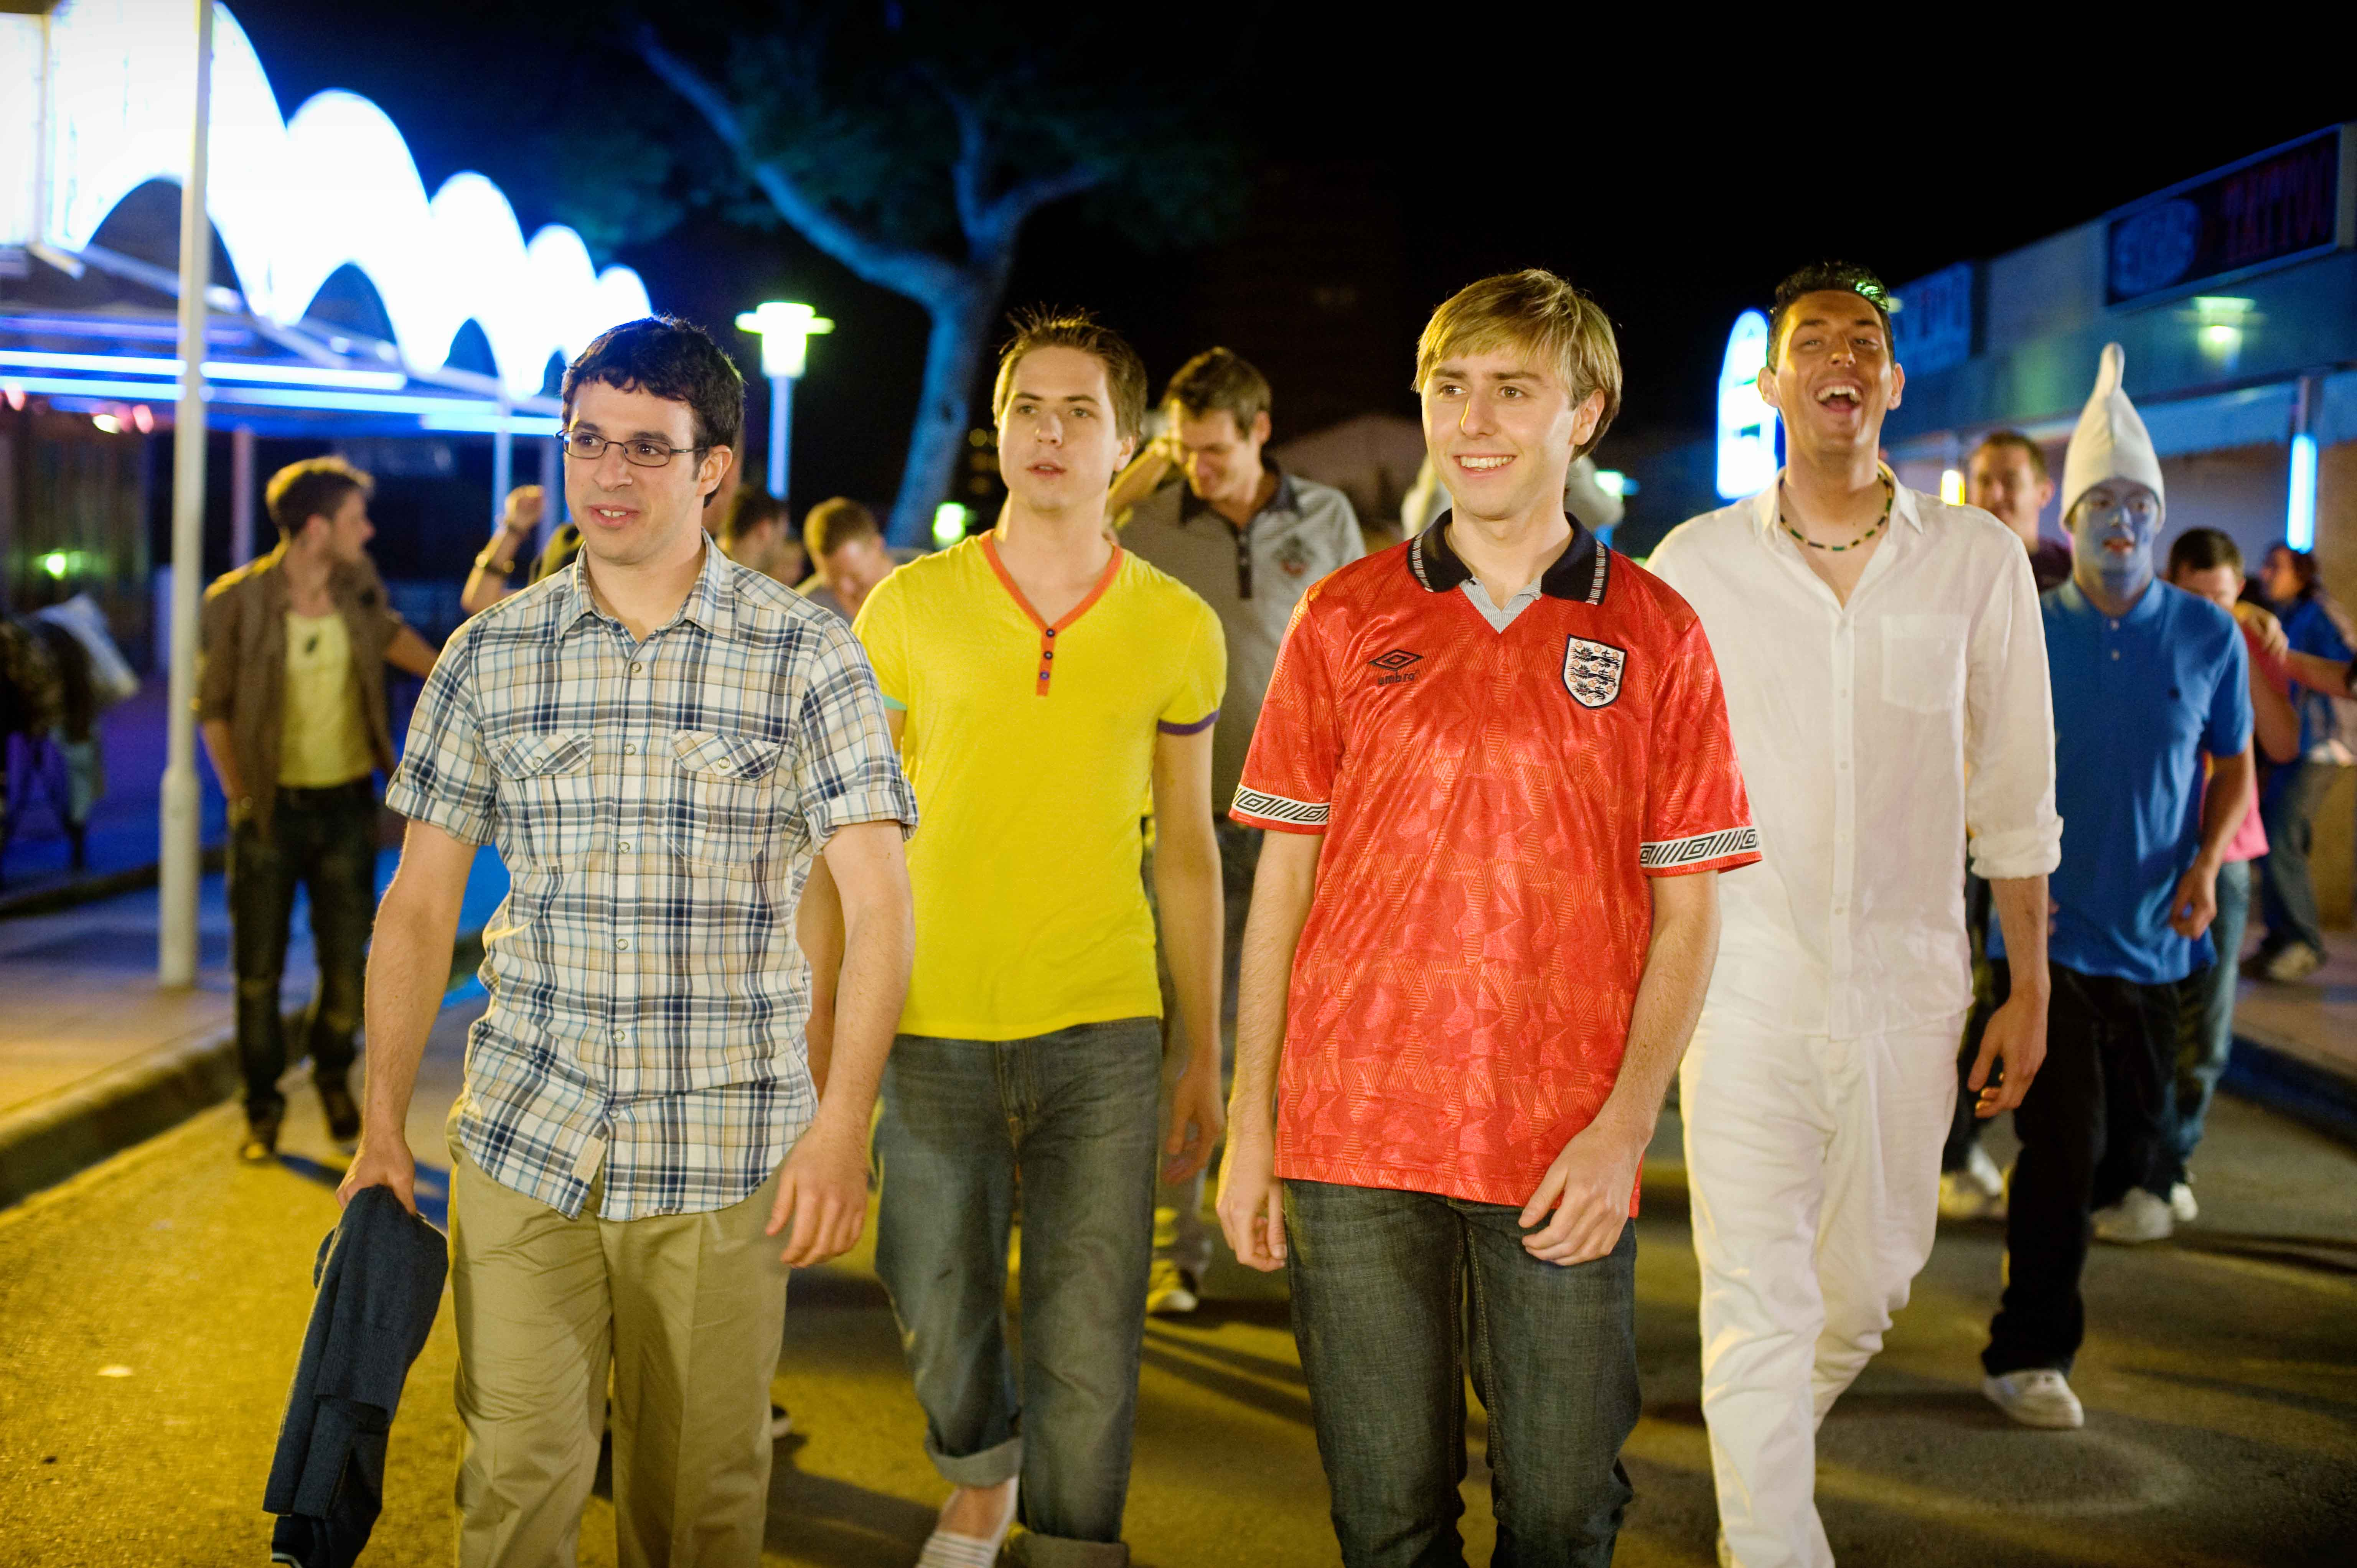 The Inbetweeners Movie © Bwark Productions, Film4 Productions, Young Films